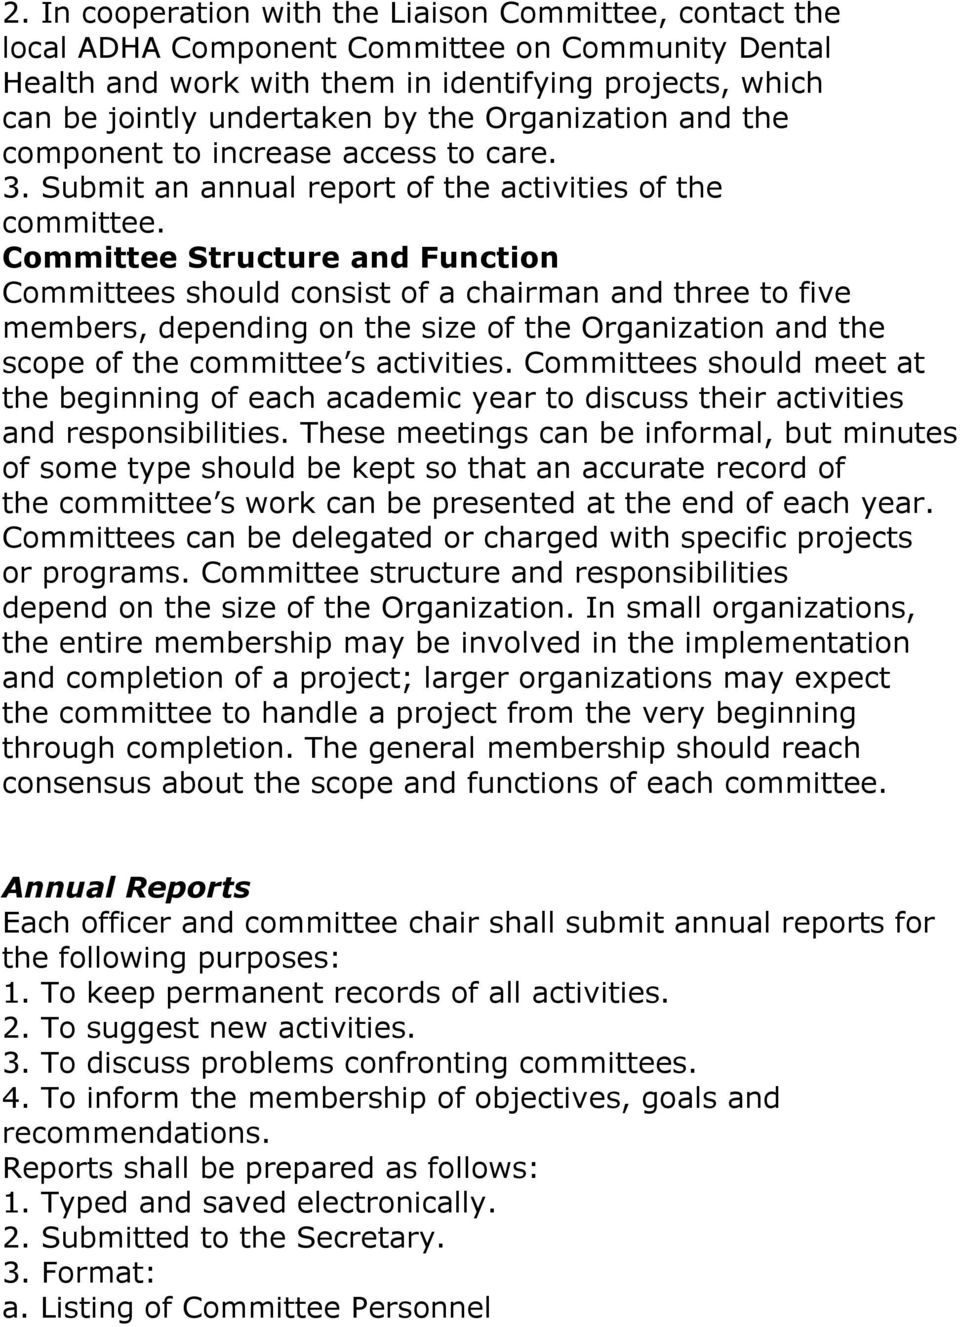 Committee Structure and Function Committees should consist of a chairman and three to five members, depending on the size of the Organization and the scope of the committee s activities.